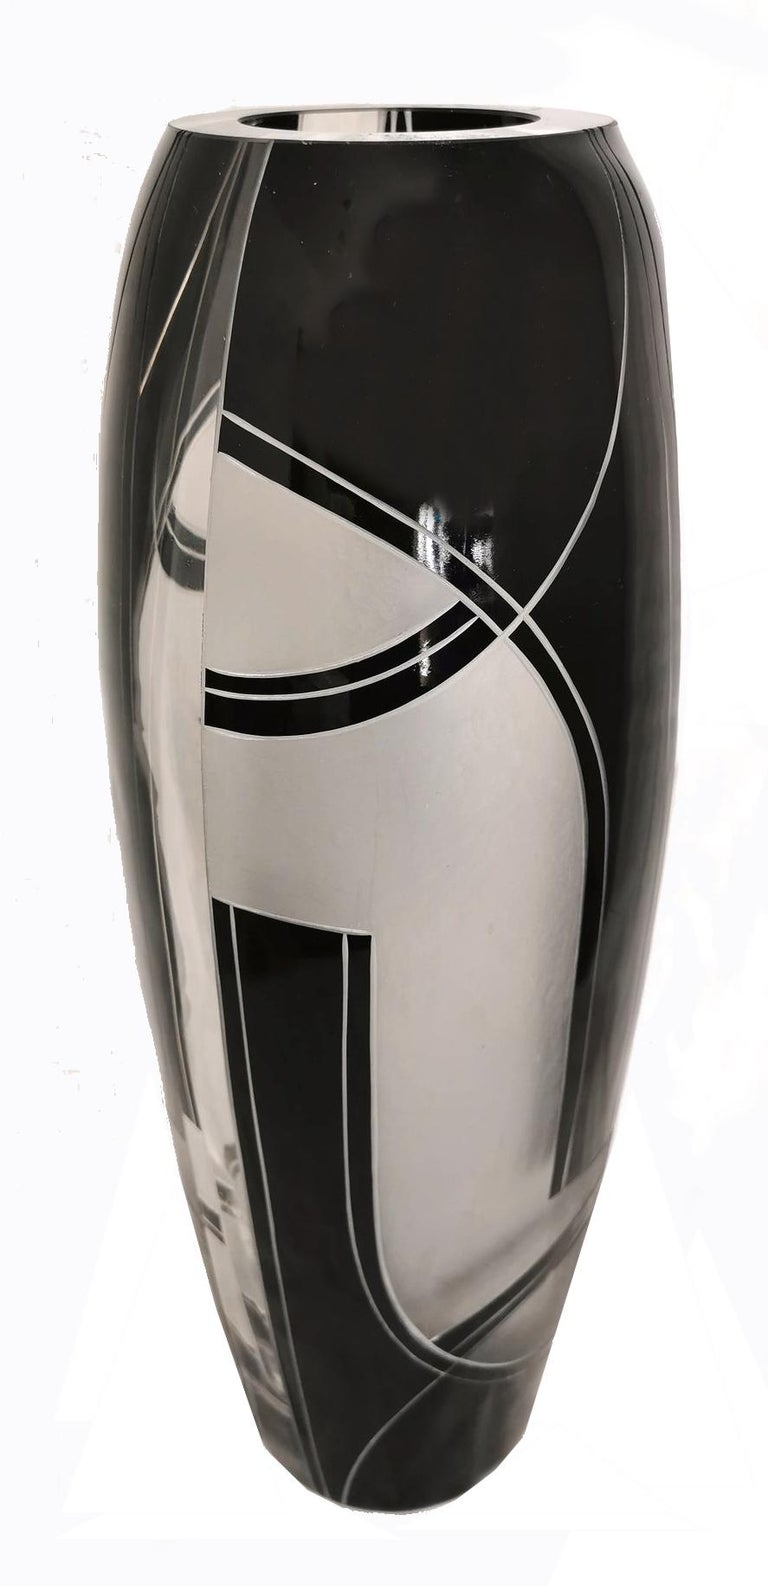 Large Oval Art Deco Geometric Enamel Glass Vase In Good Condition For Sale In Devon, England